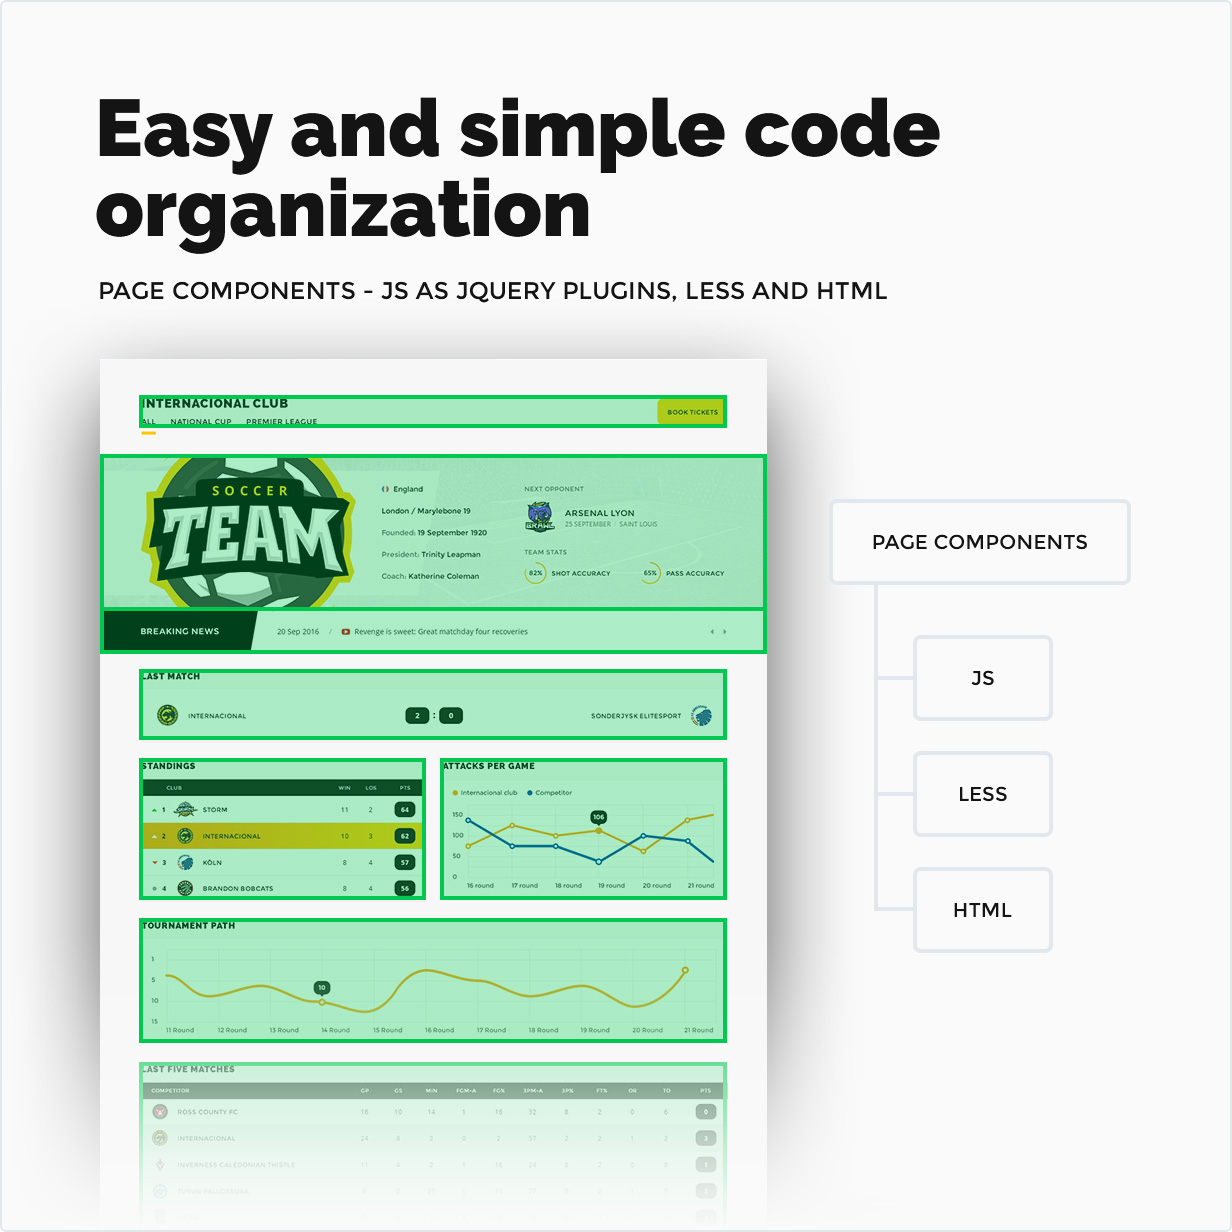 Easy and simple code organization - Page Components